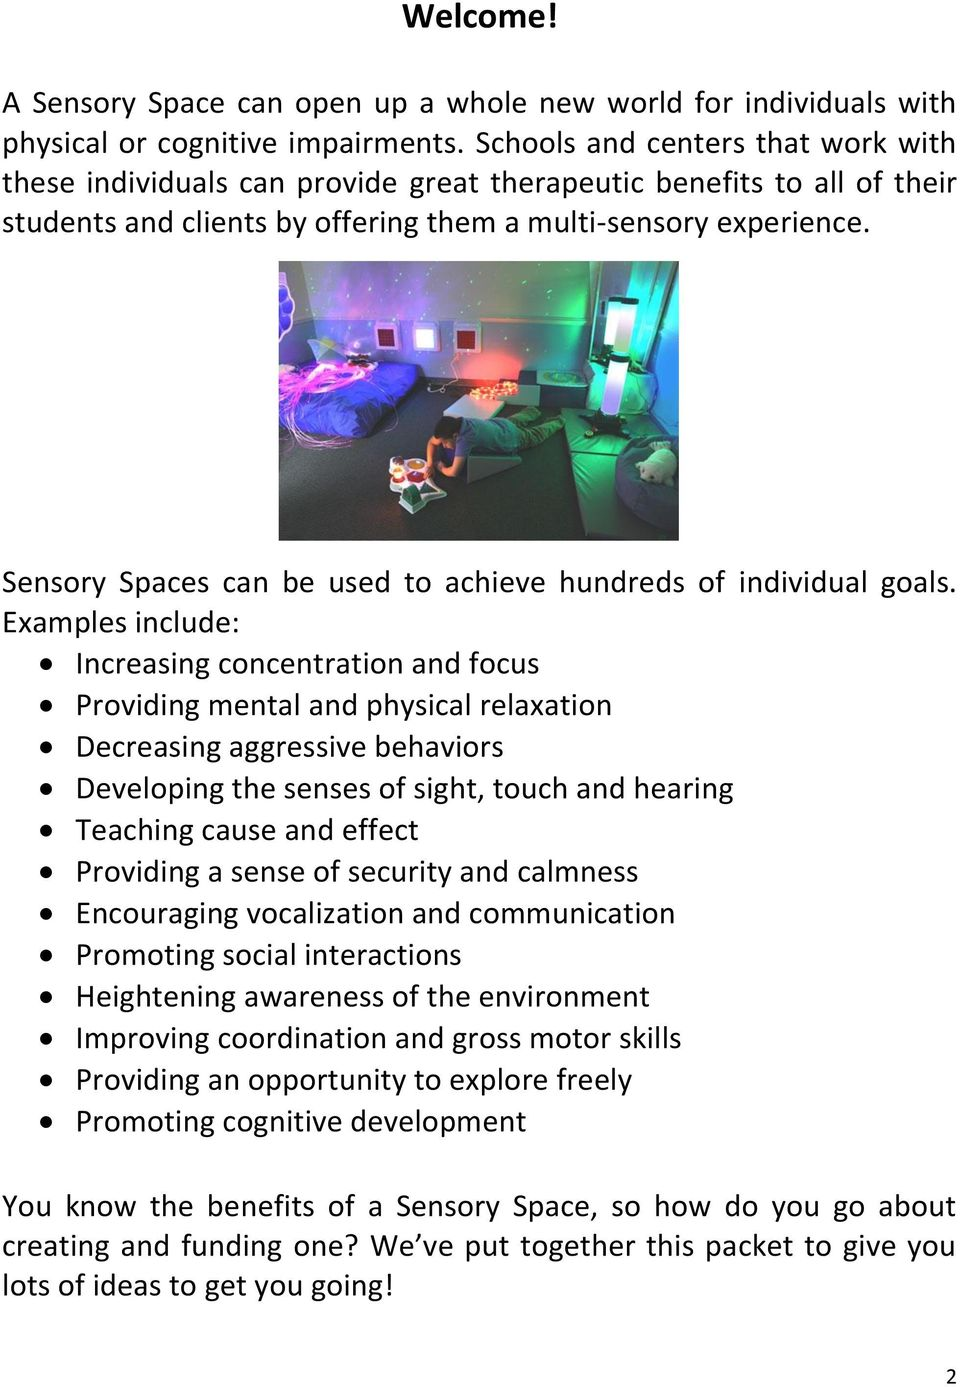 Sensory Spaces can be used to achieve hundreds of individual goals.